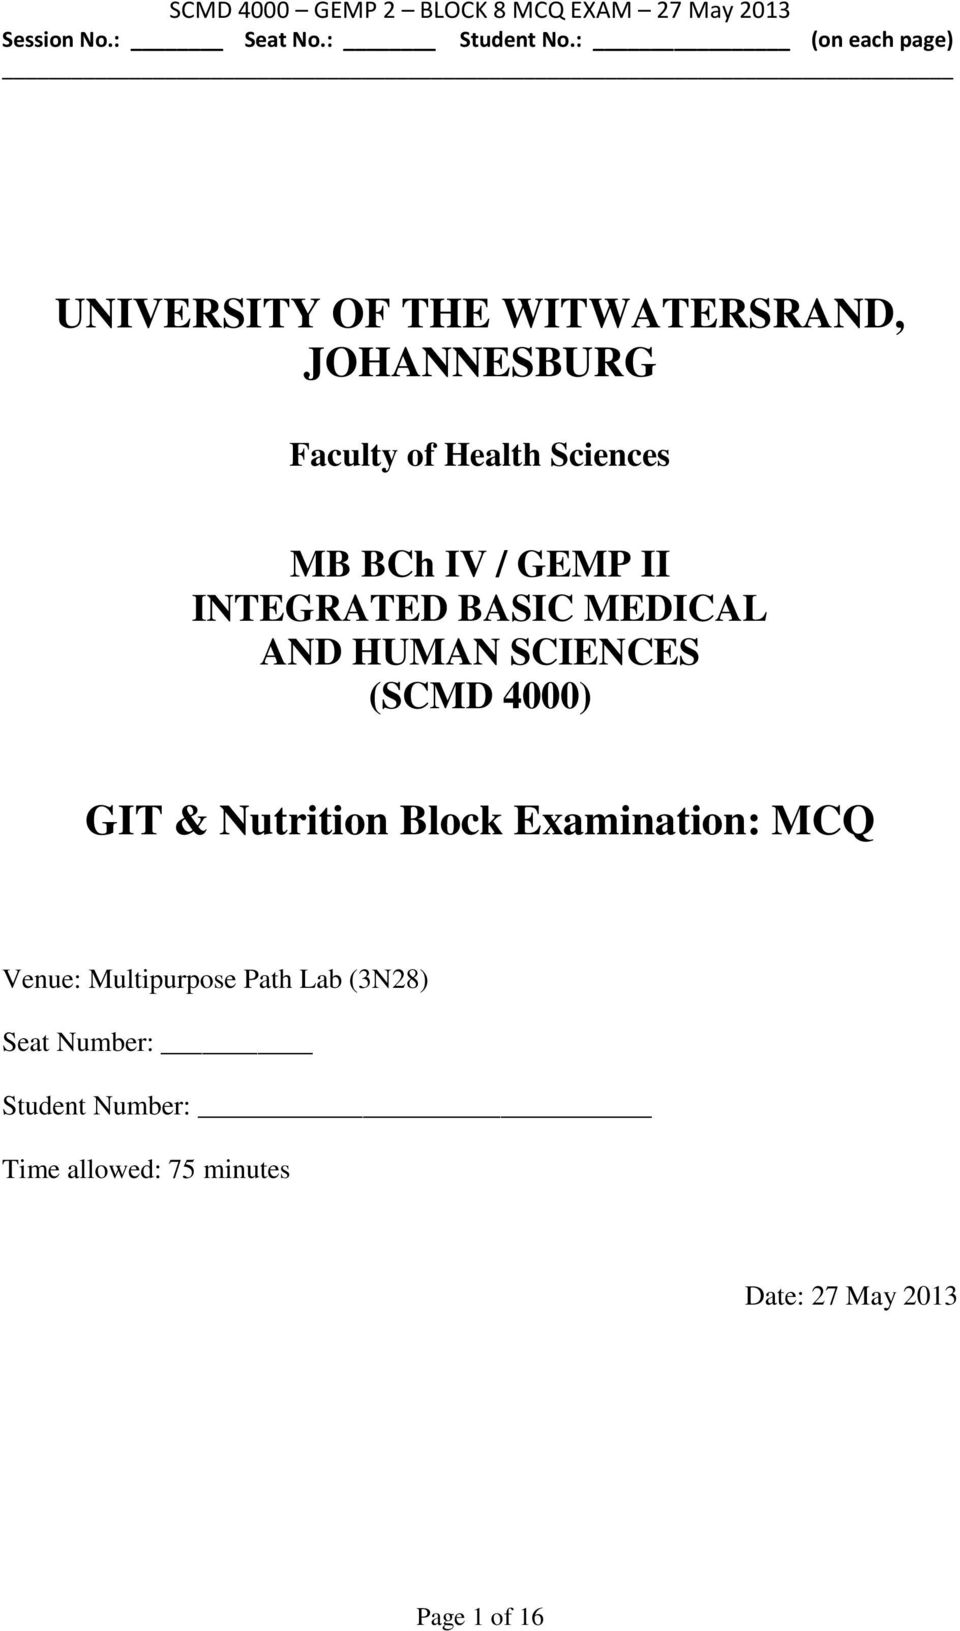 UNIVERSITY OF THE WITWATERSRAND, JOHANNESBURG  GIT & Nutrition Block